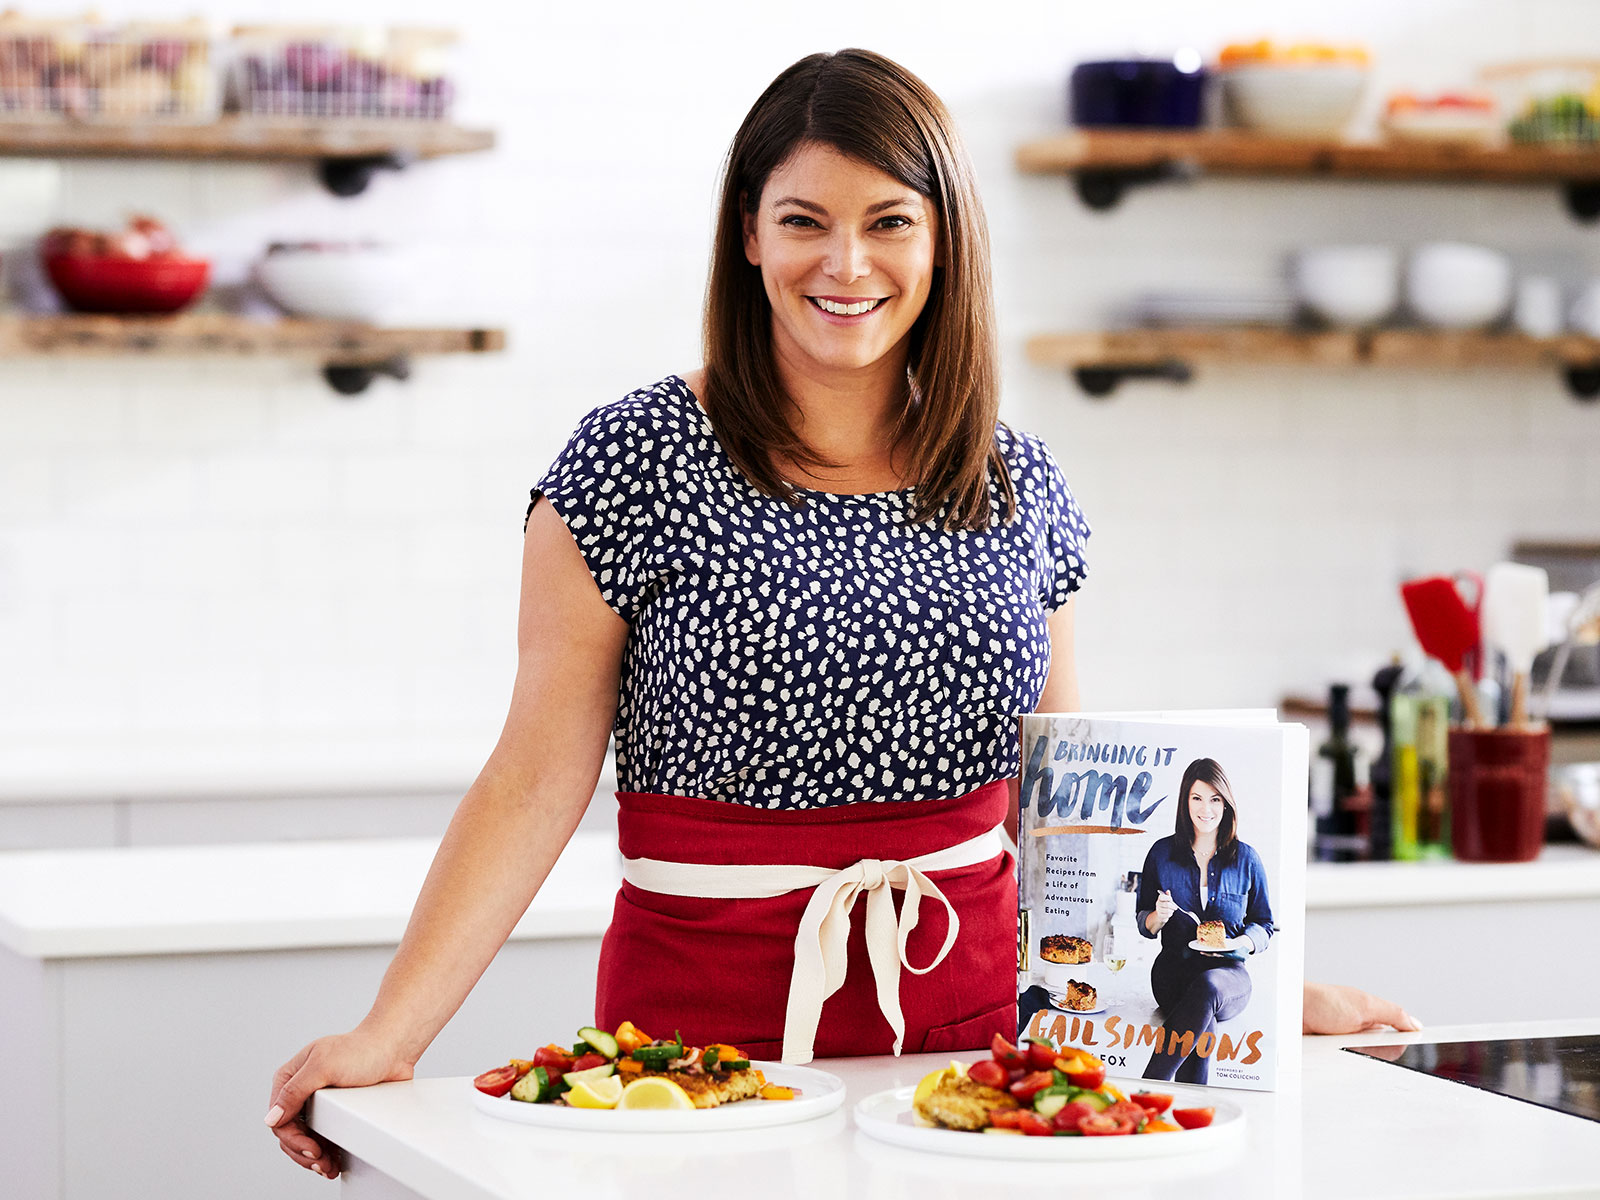 Gail Simmons Has Partnered with Meal Kit Service Plated